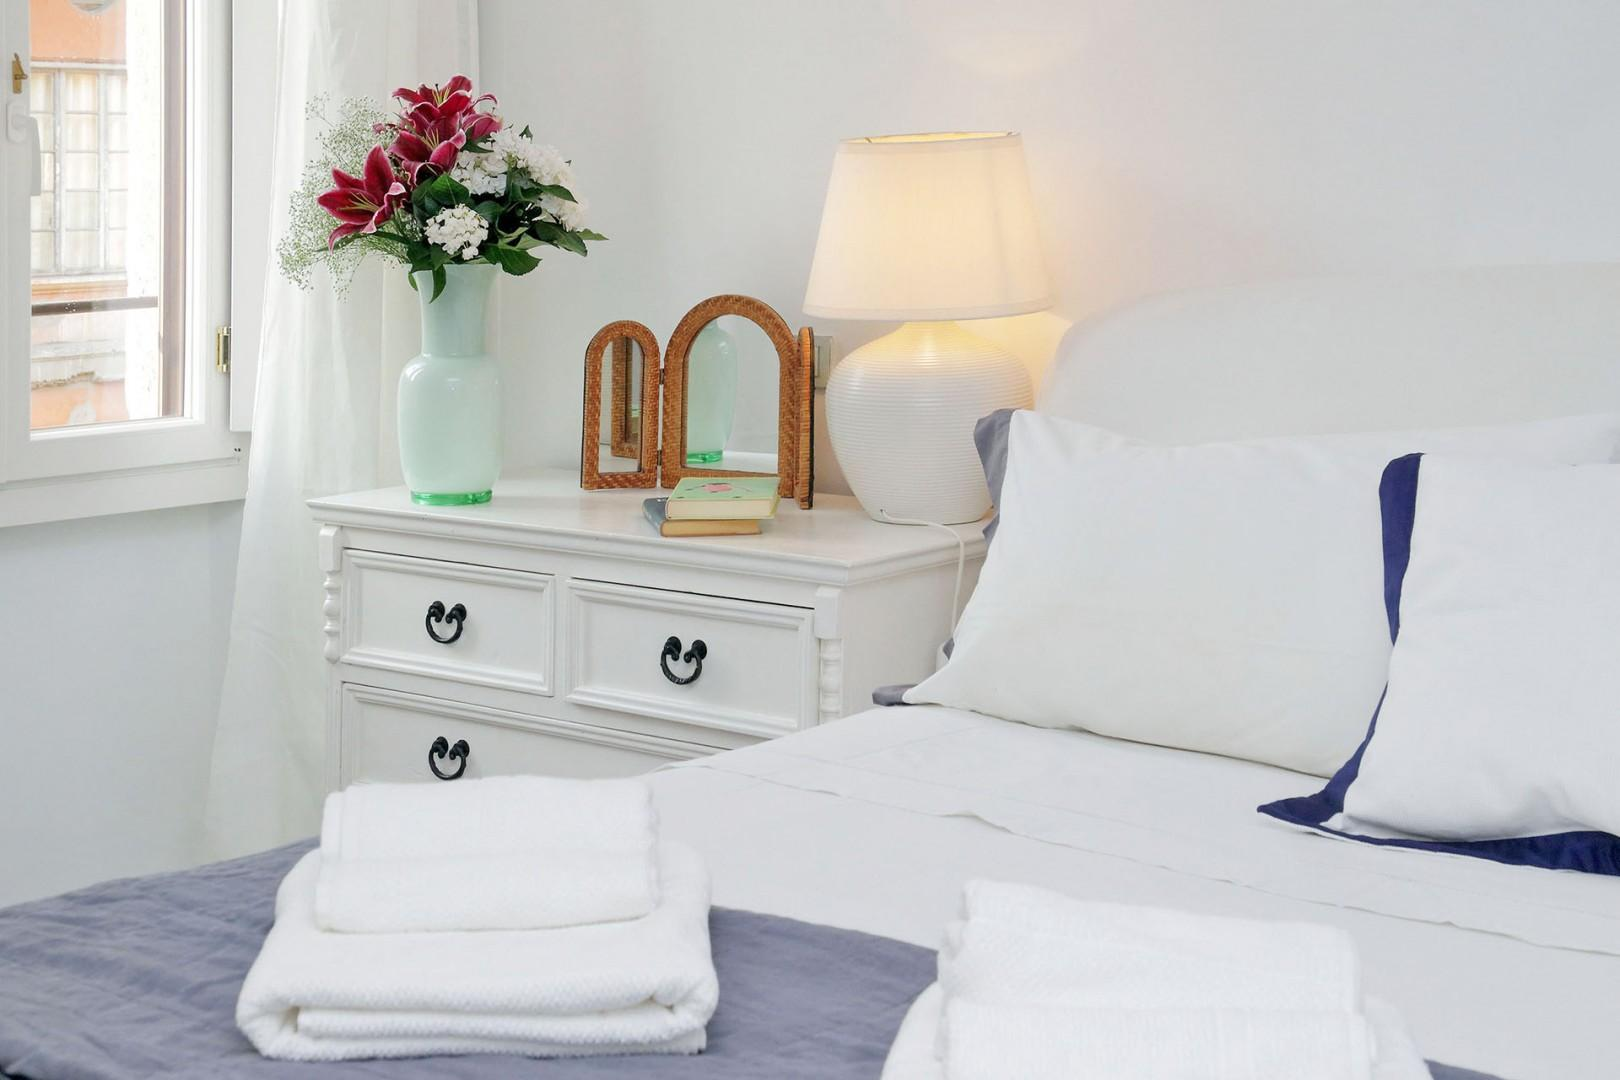 All 3 bedrooms have quality linens.